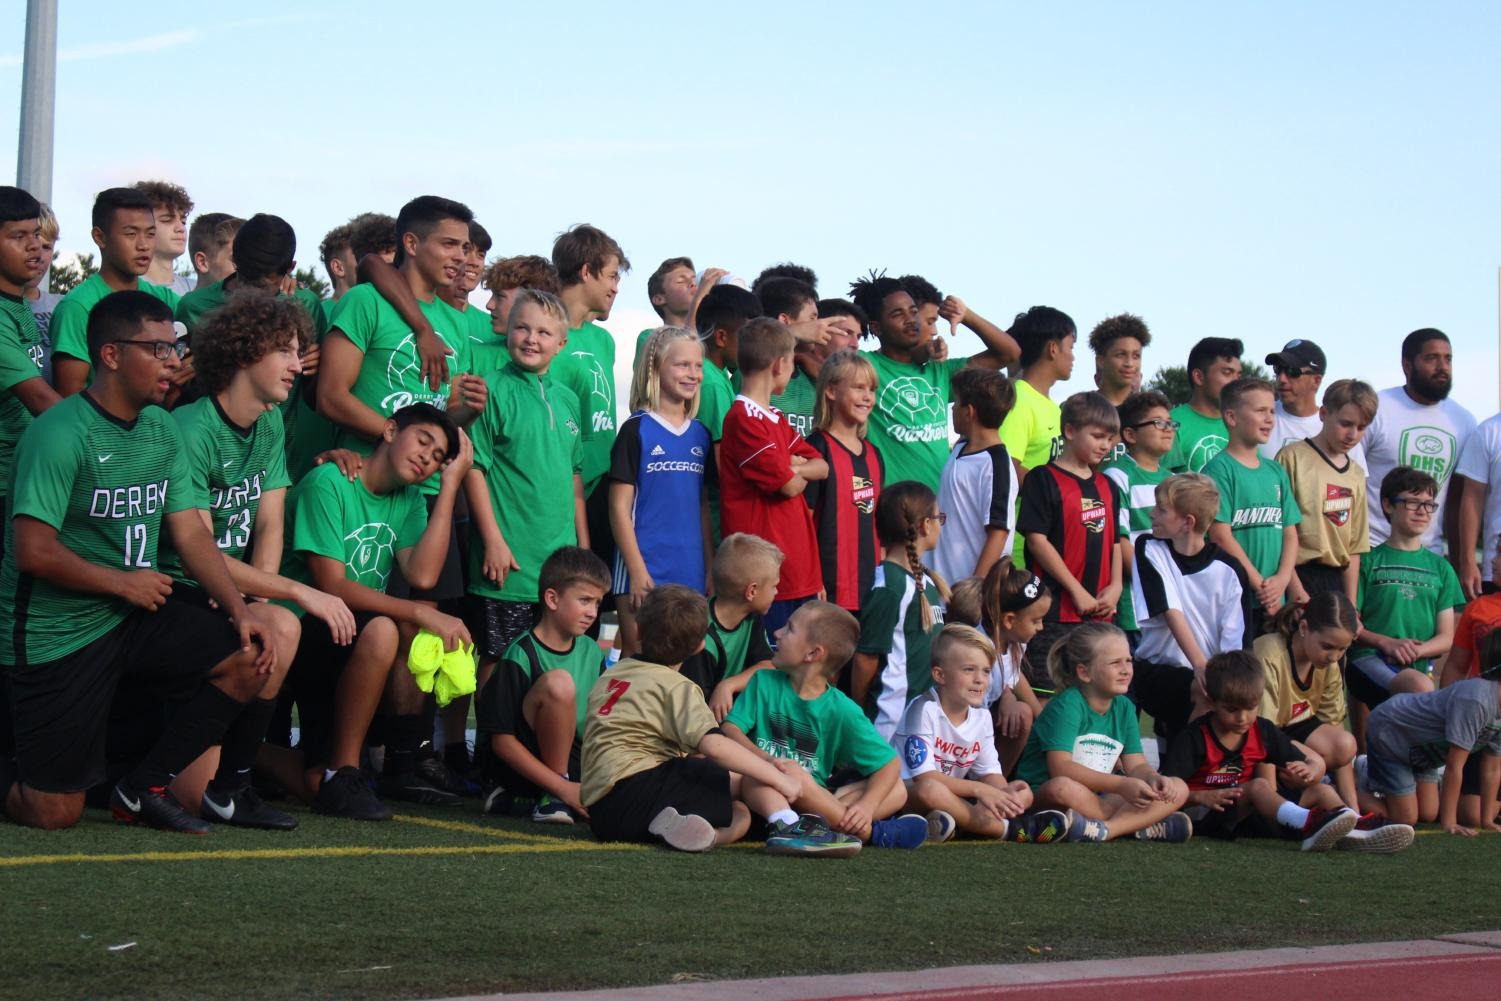 Derby+Soccer+team+gathers+together+with+young+league+to+take+a+picture+before+the+game.